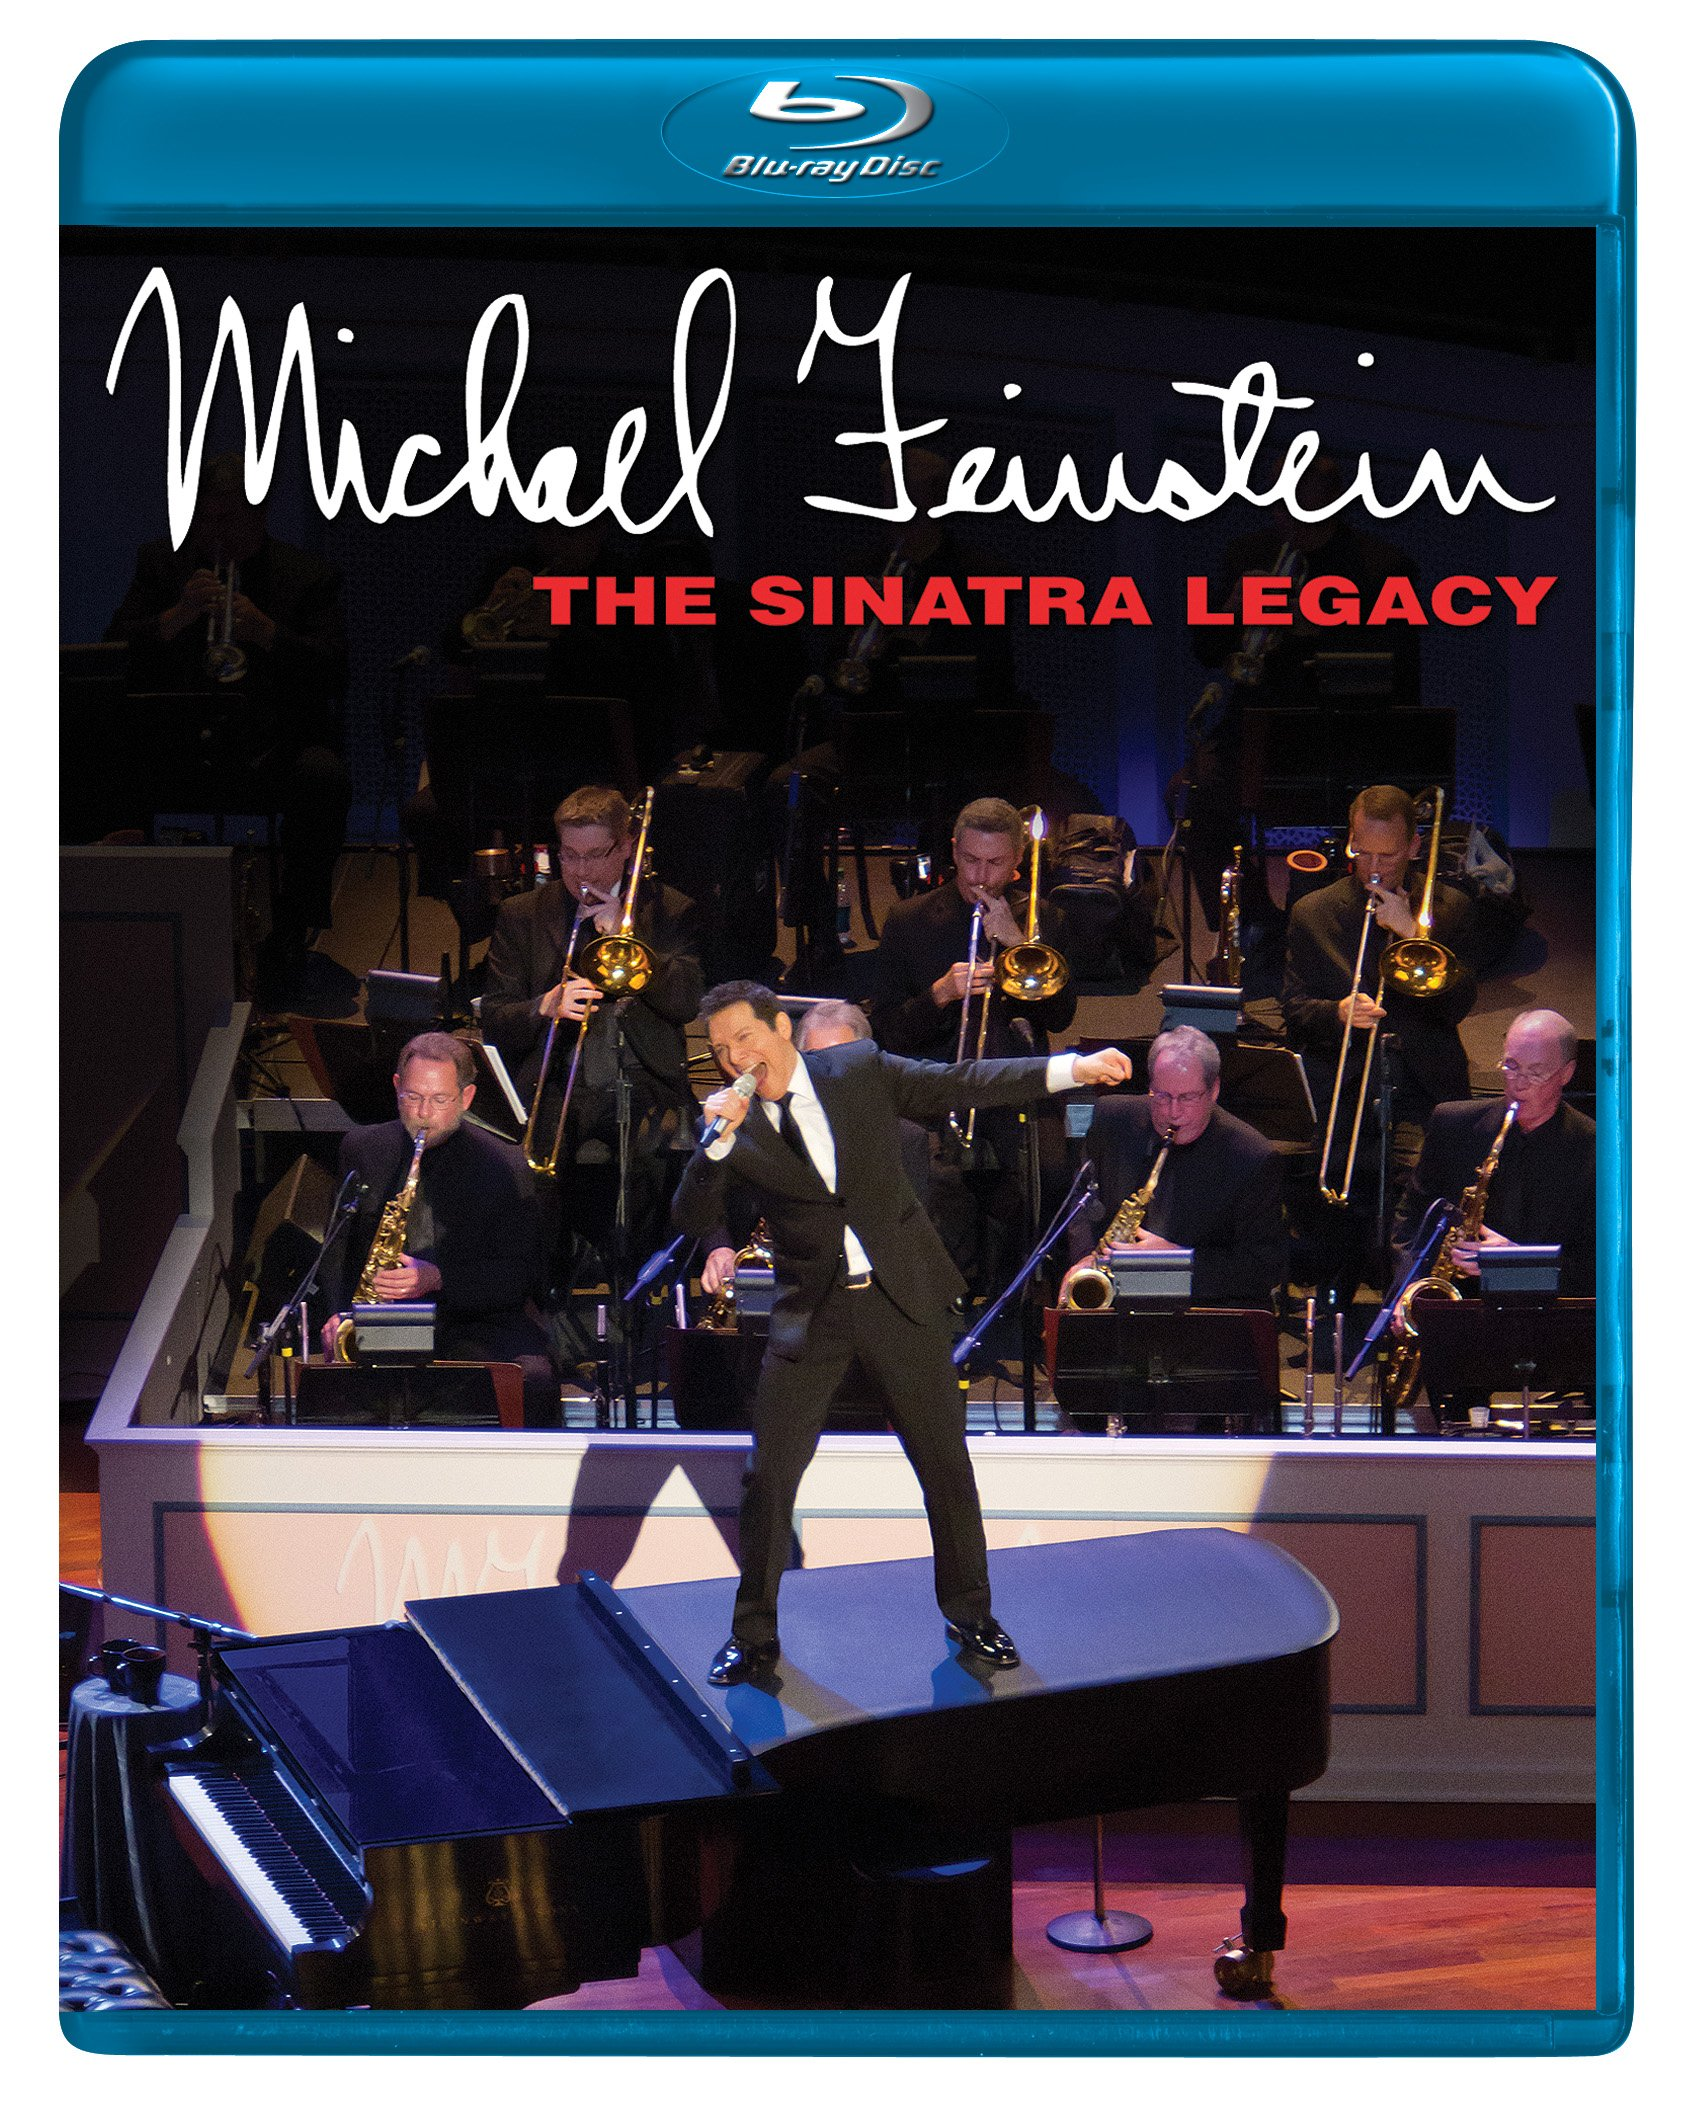 Michael Feinstein - Michael Feinstein: The Sinatra Legacy (Widescreen)